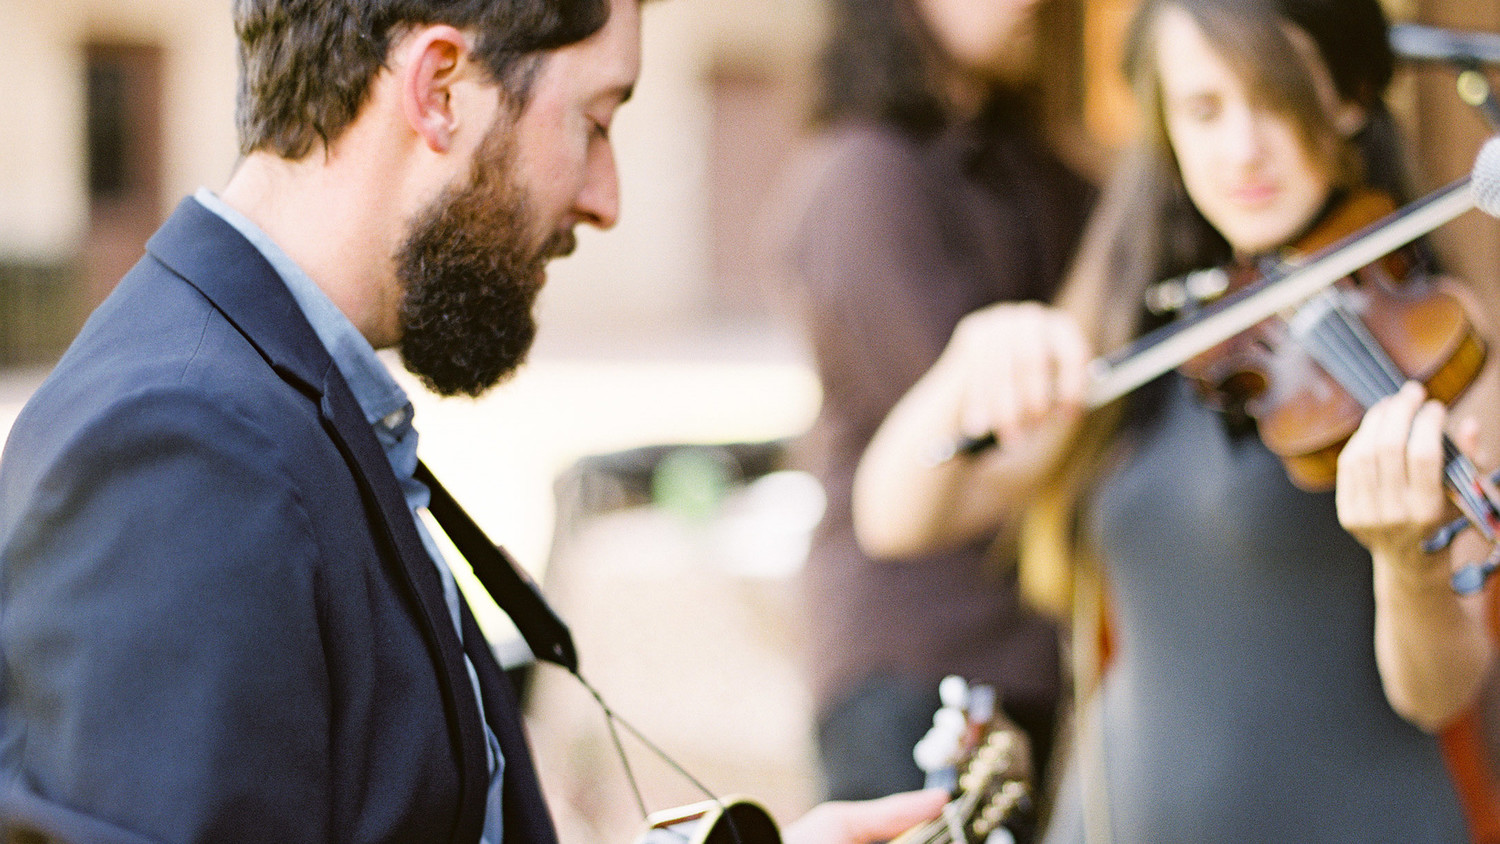 Should You Have Your Wedding Band Or Dj Play Music During Dinner